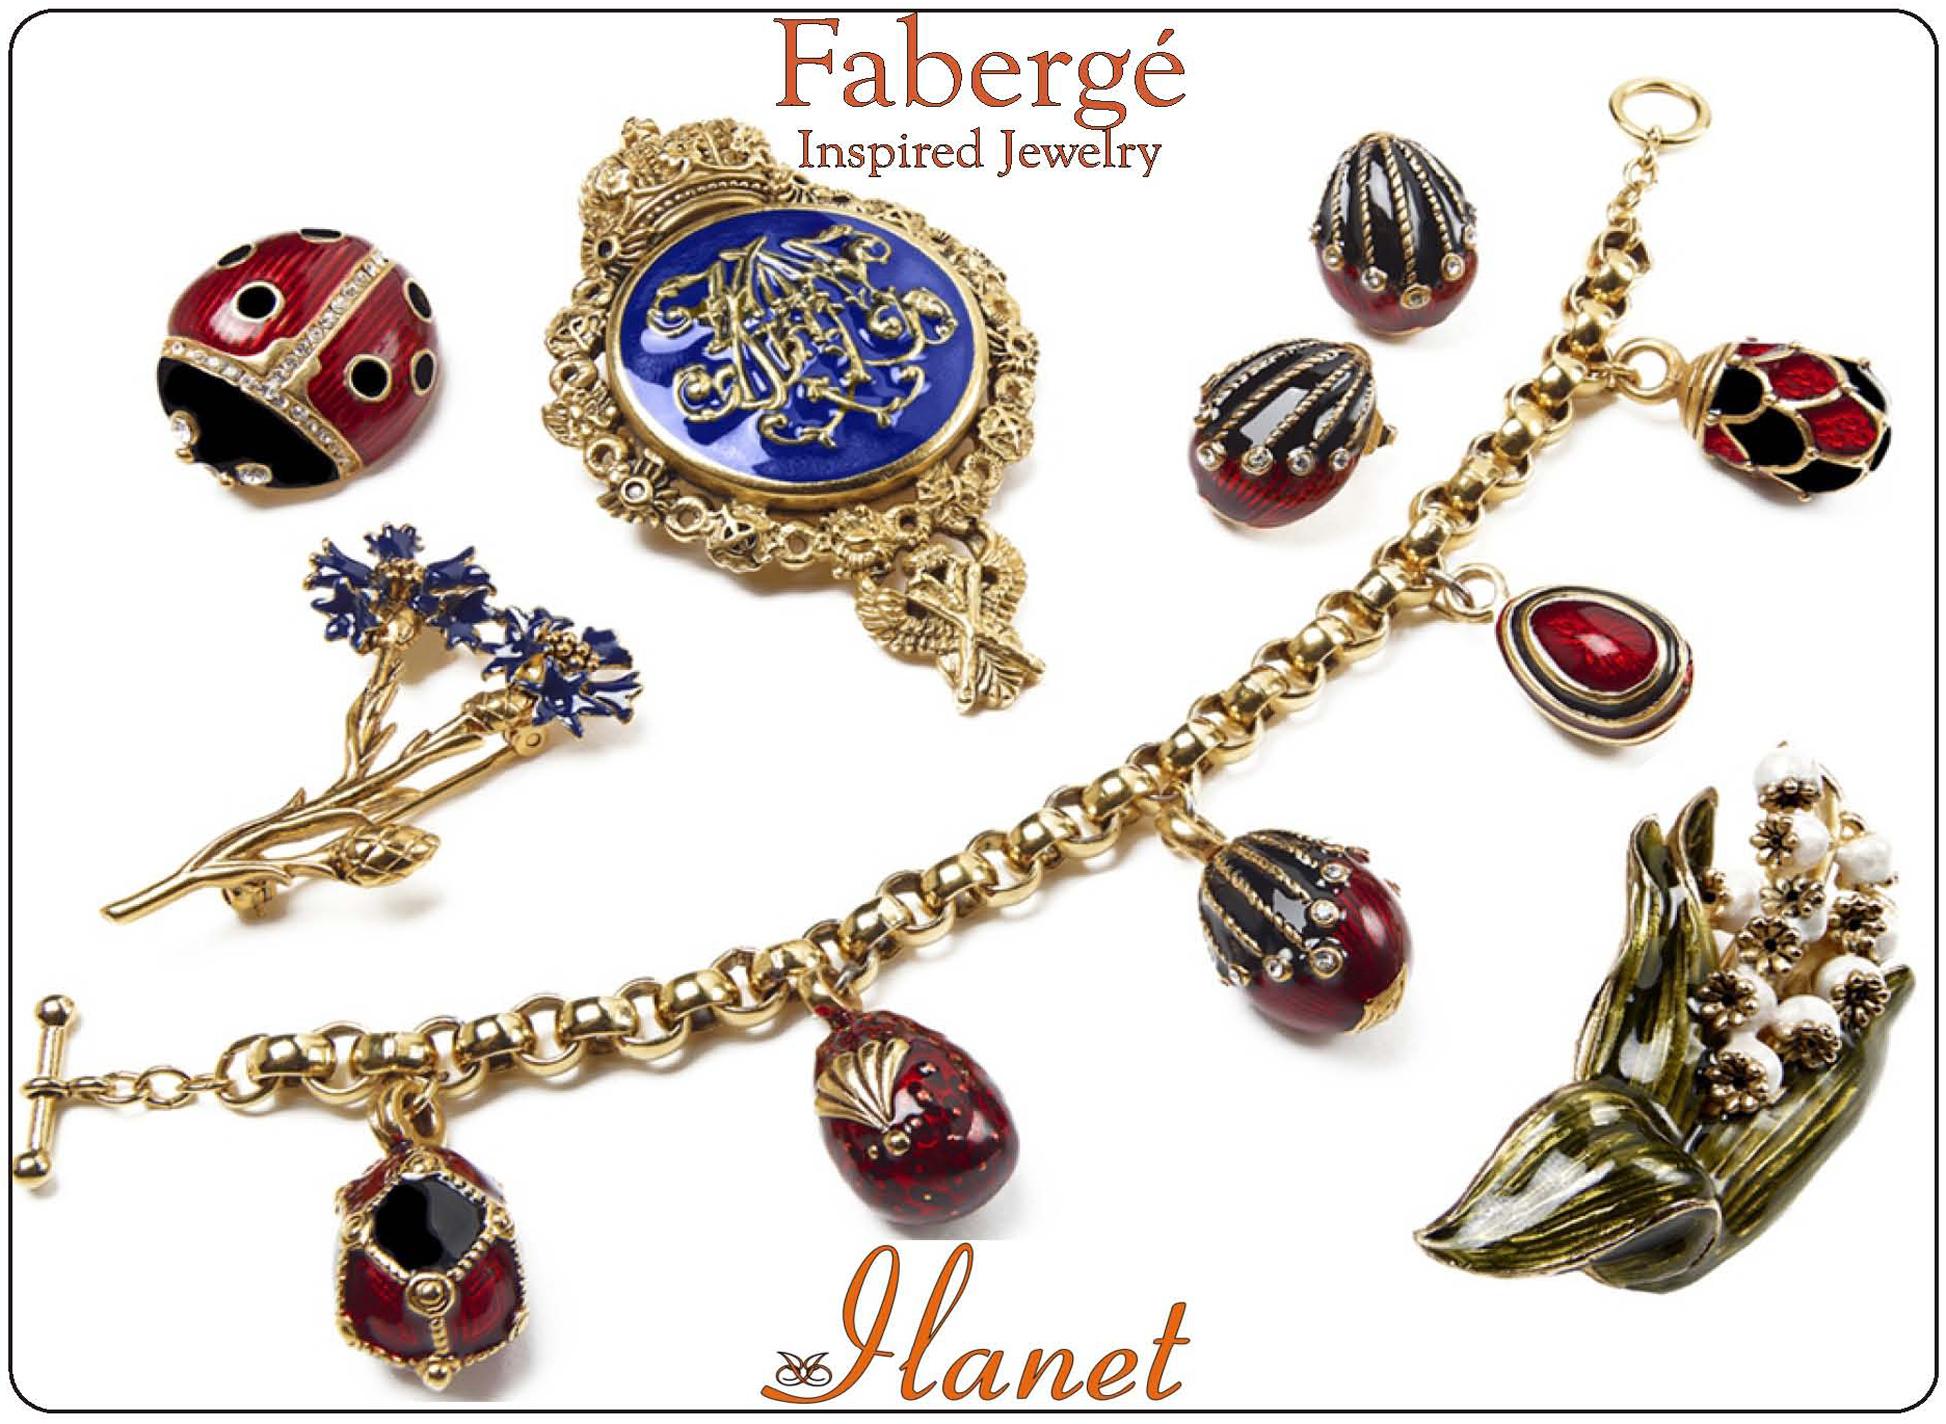 Fabergé inspired Jewels